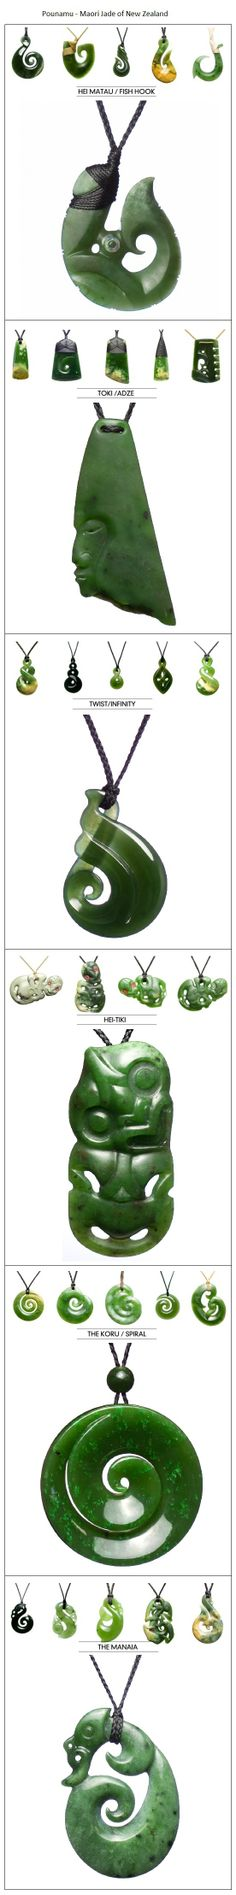 Pounamu plays a very important role in Māori culture. It is considered a taonga (treasure). Pounamu taonga increase in mana (prestige) as they pass from one generation to another. The most prized taonga are those with known histories going back many generations. These are believed to have their own mana and were often given as gifts to seal important agreements.